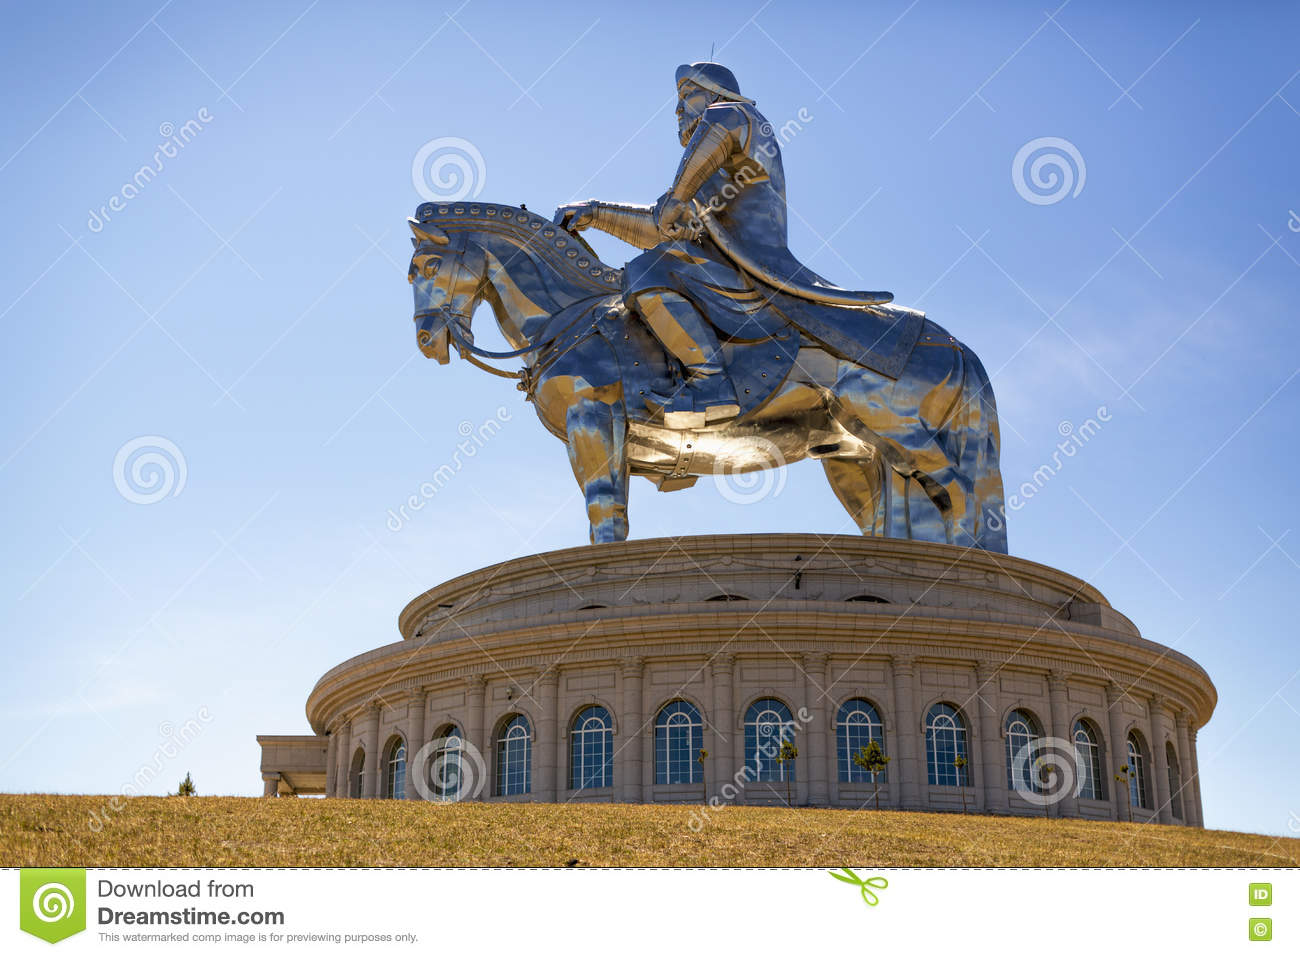 The world s largest statue of Chinghis Khan